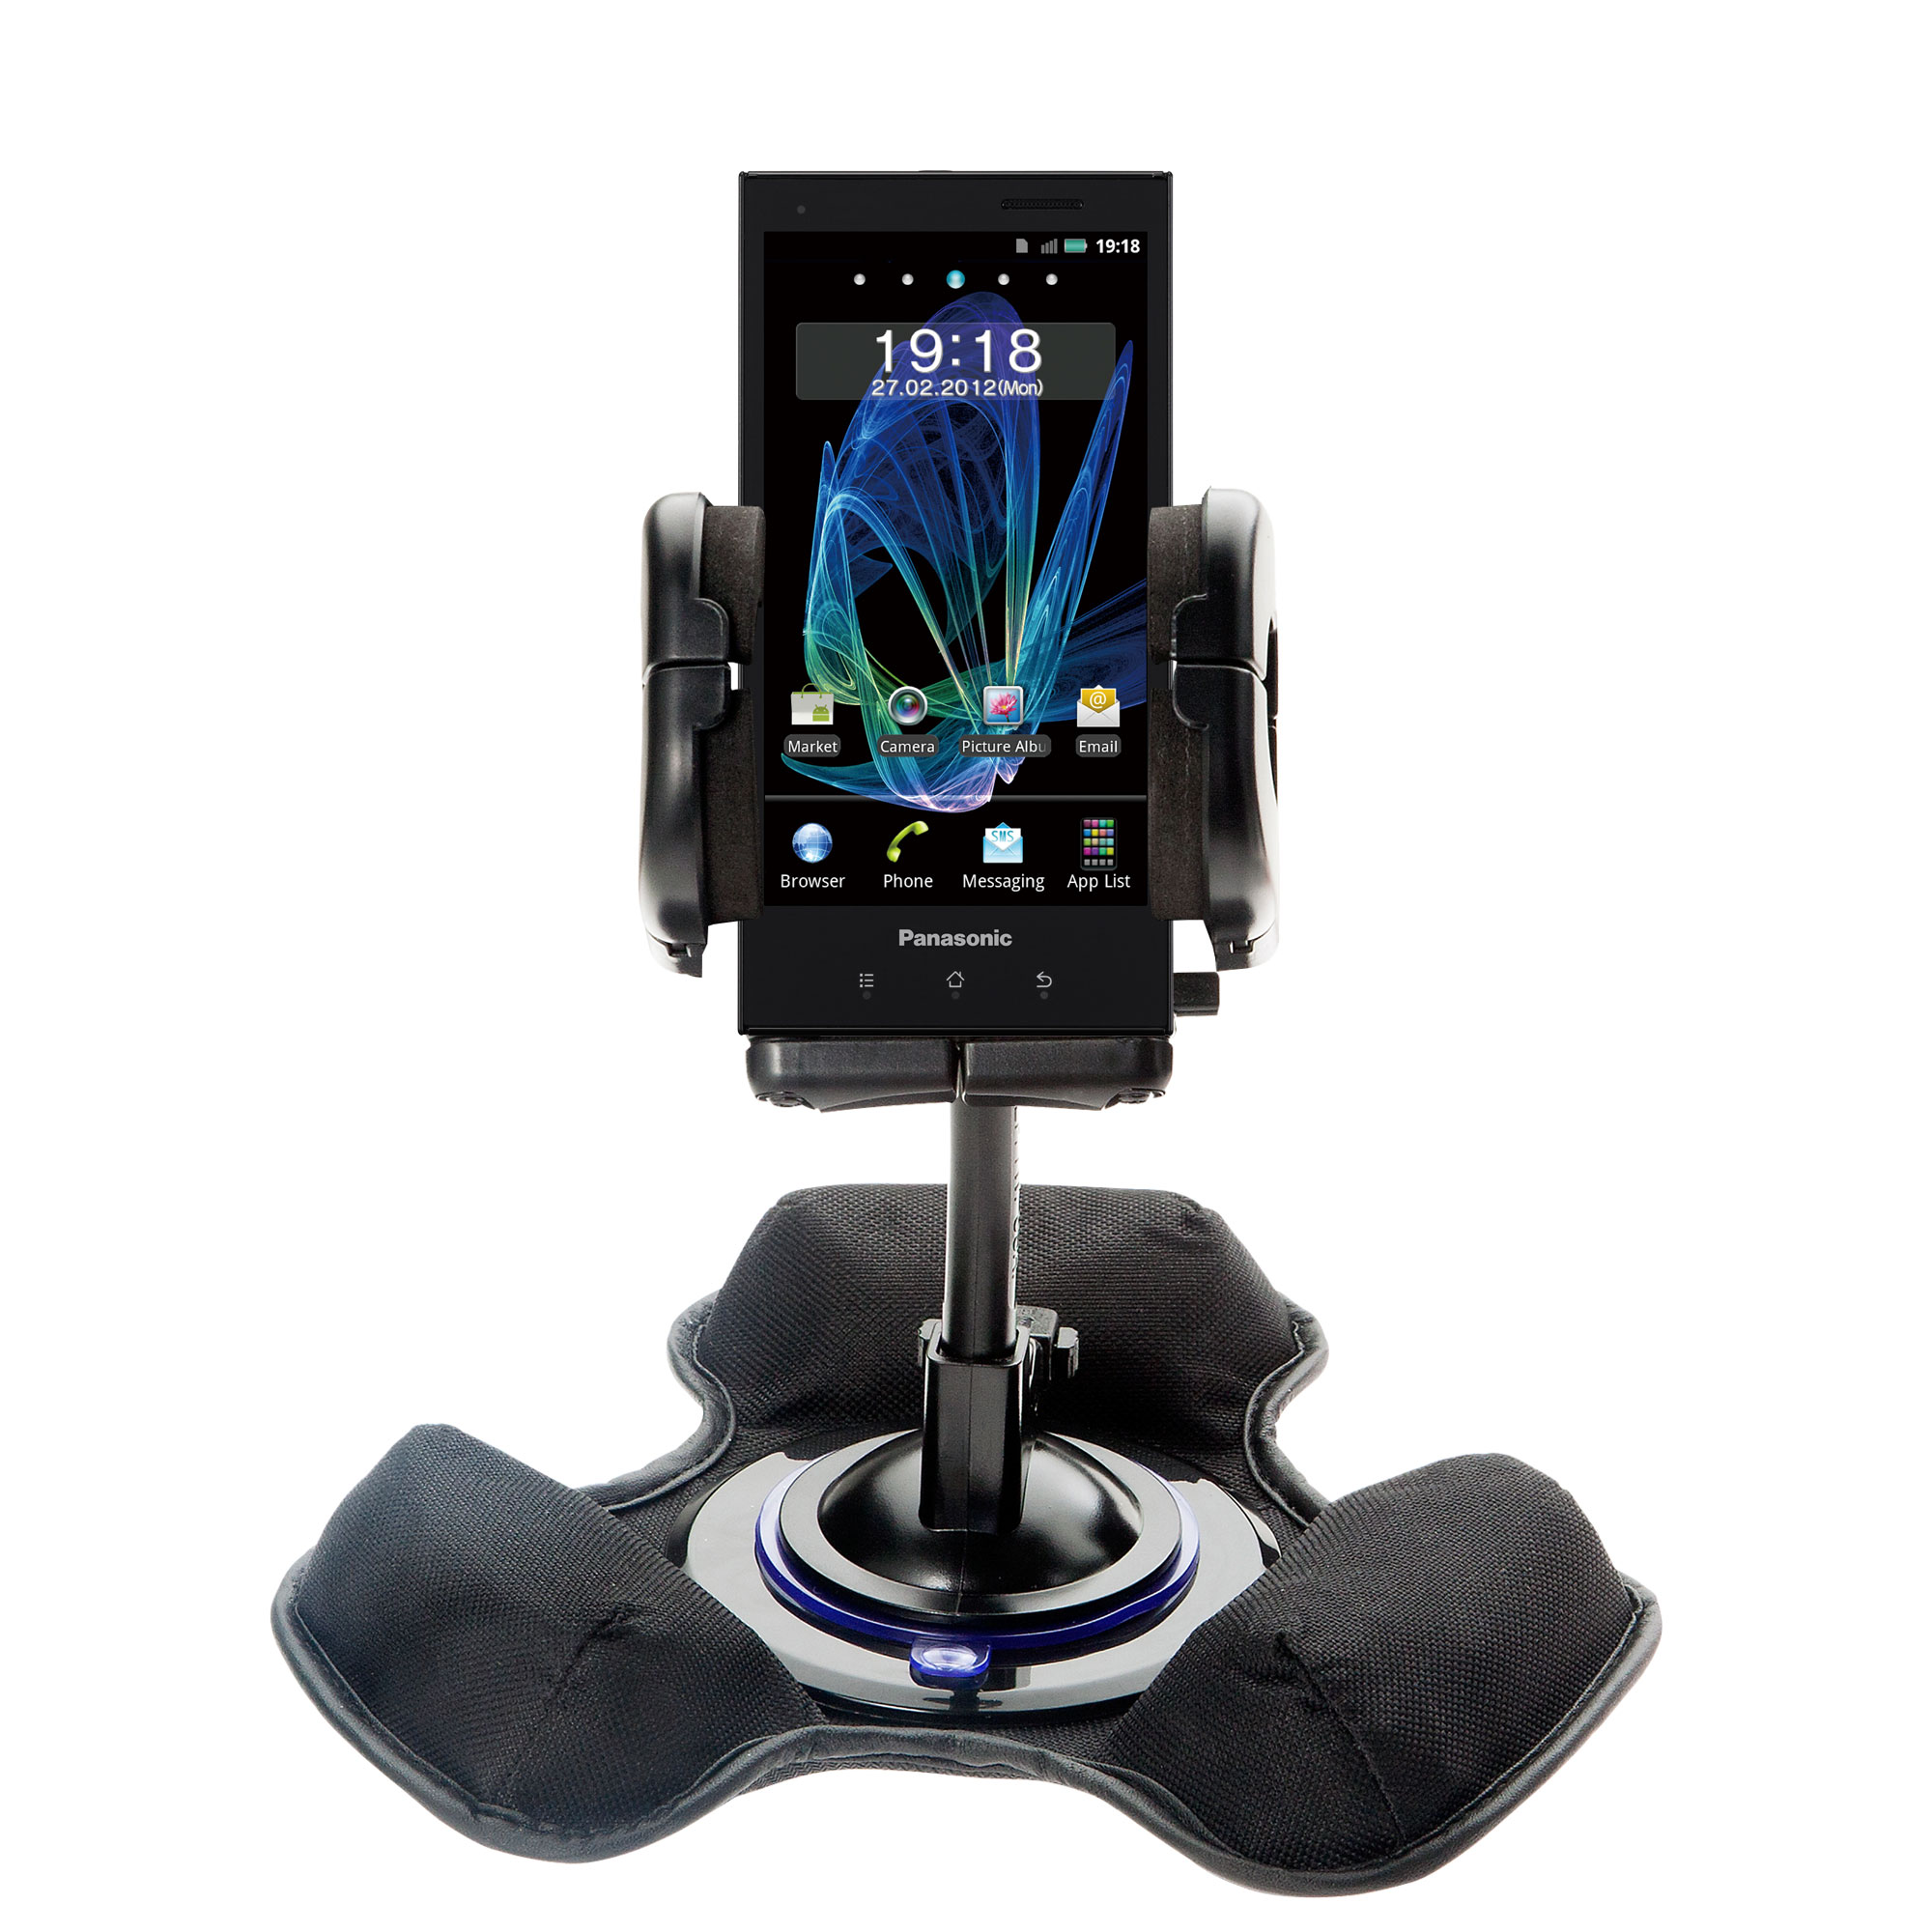 Dash and Windshield Holder compatible with the Panasonic Eluga / dL1